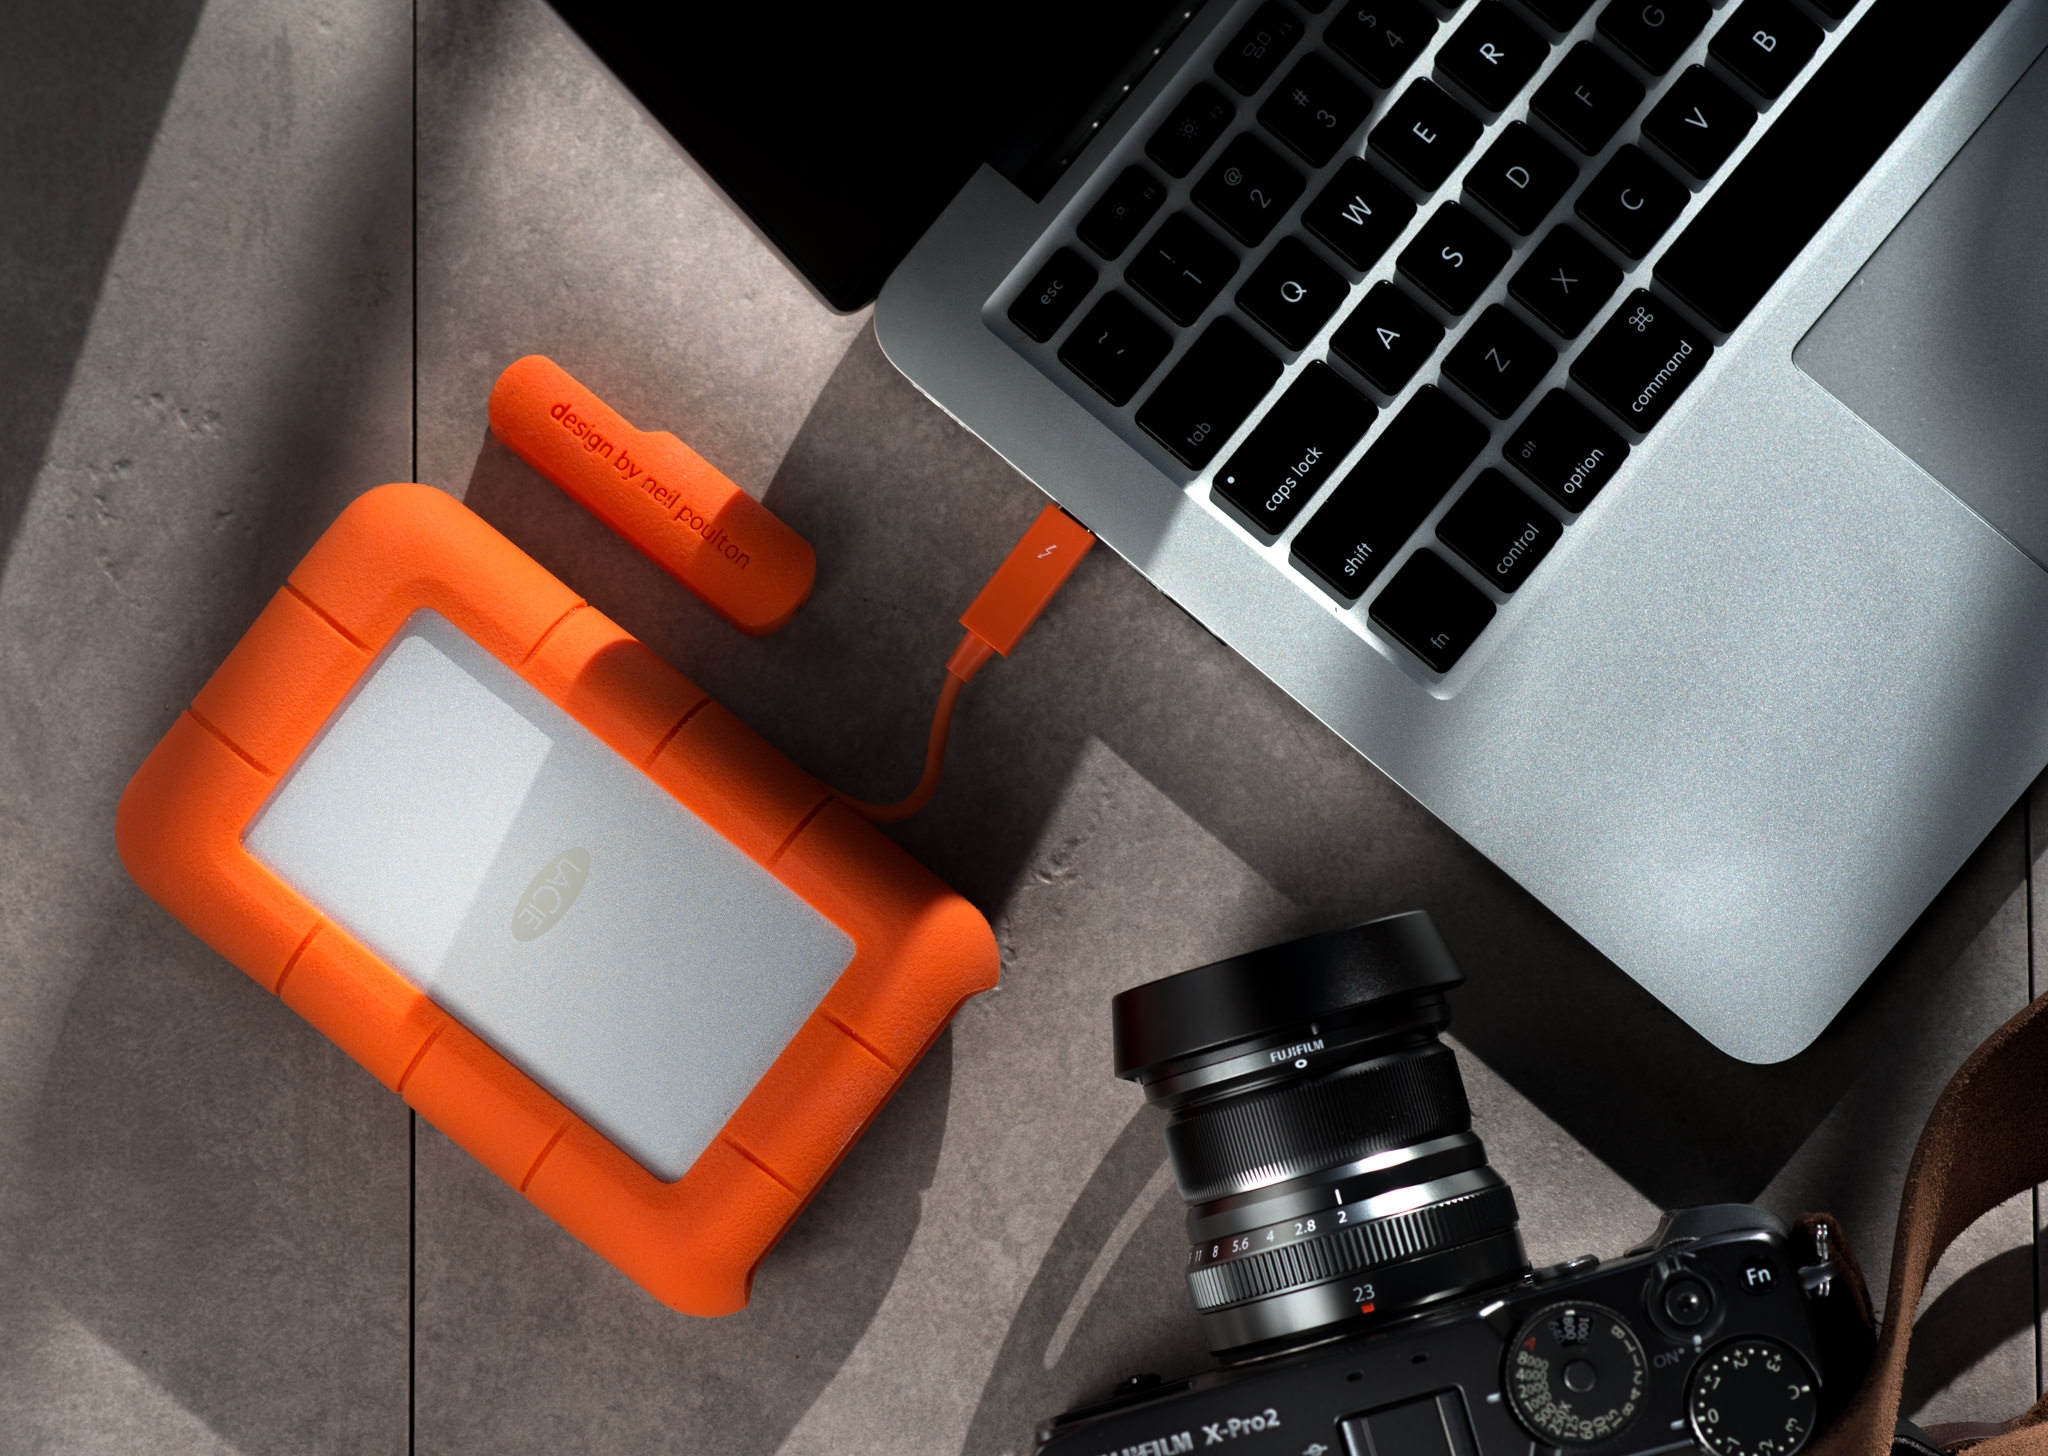 Best Portable Hard Drives